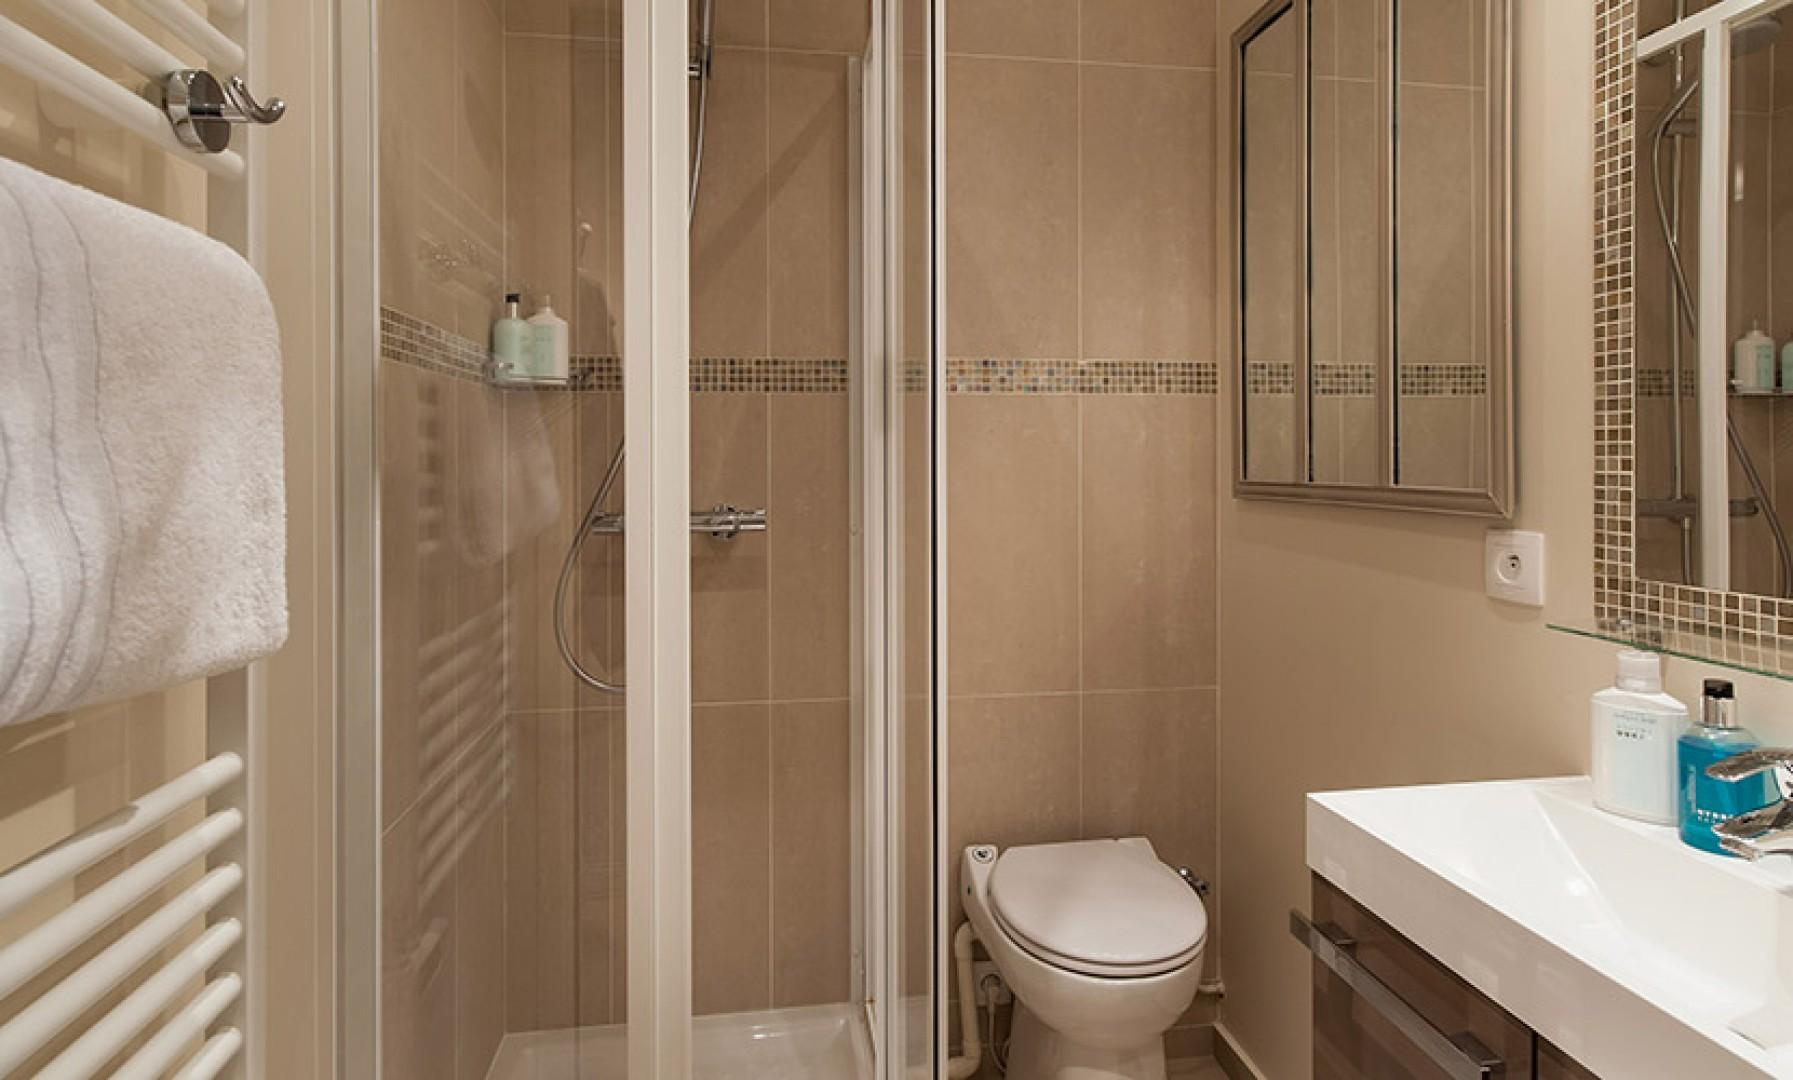 The luxurious bathroom is equipped with a shower, toilet and sink.